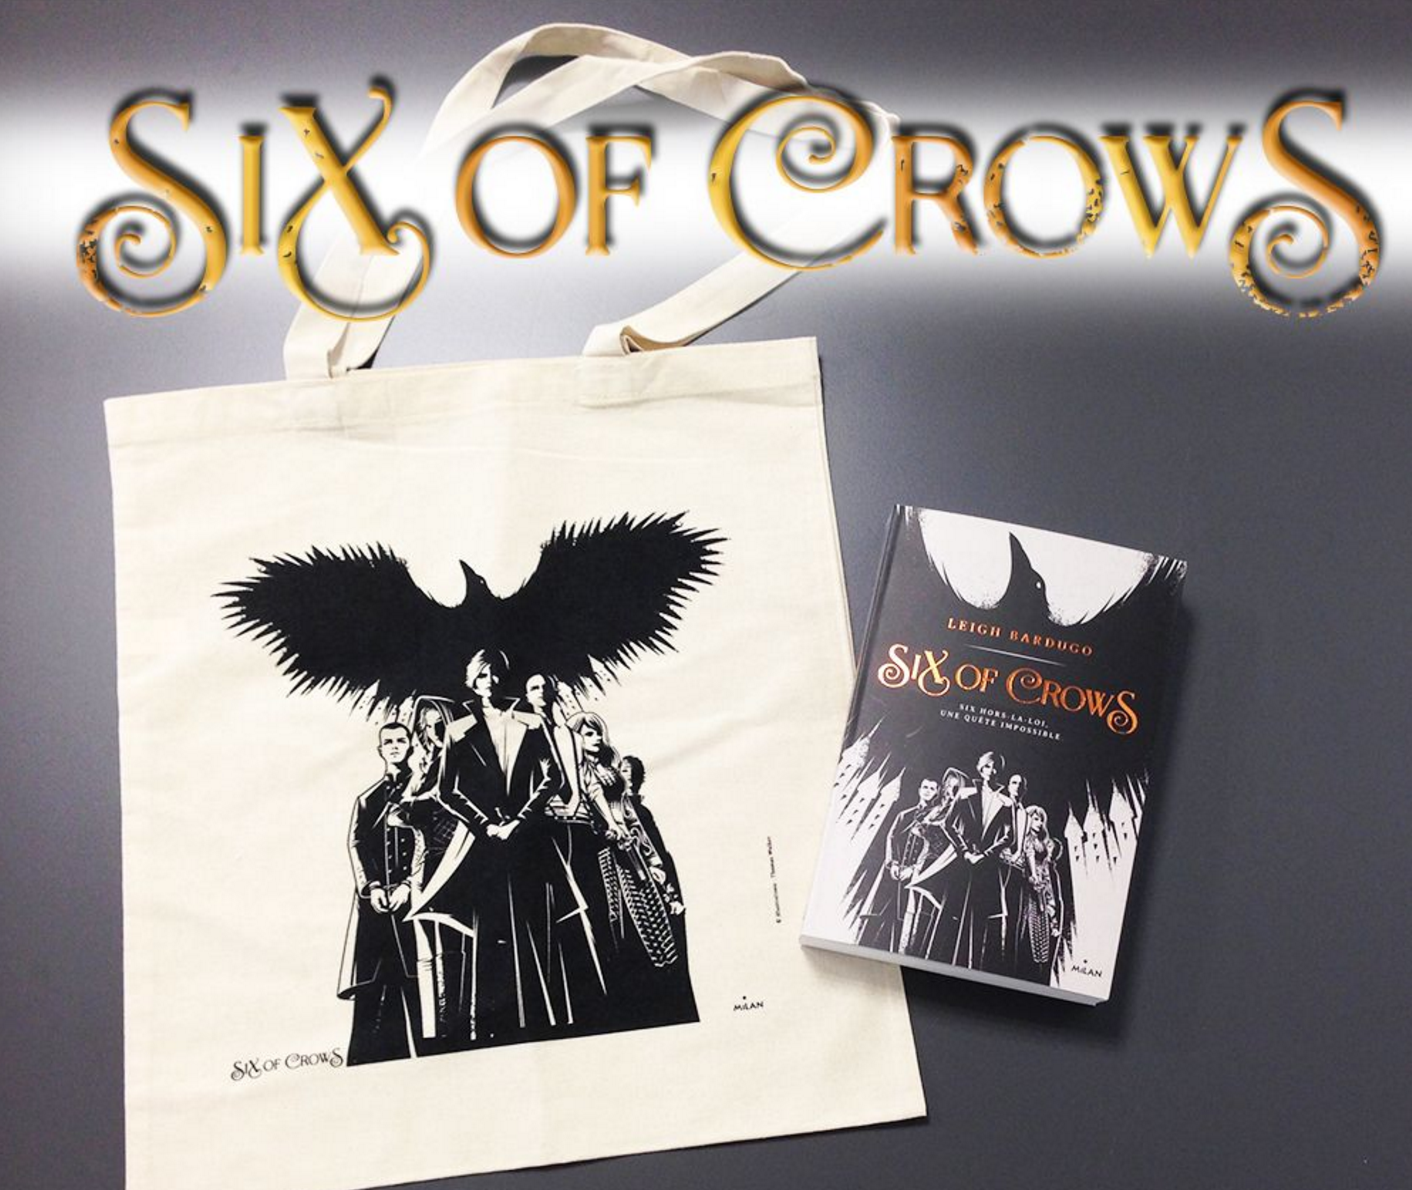 Image de l'article « Concours Six of Crows »